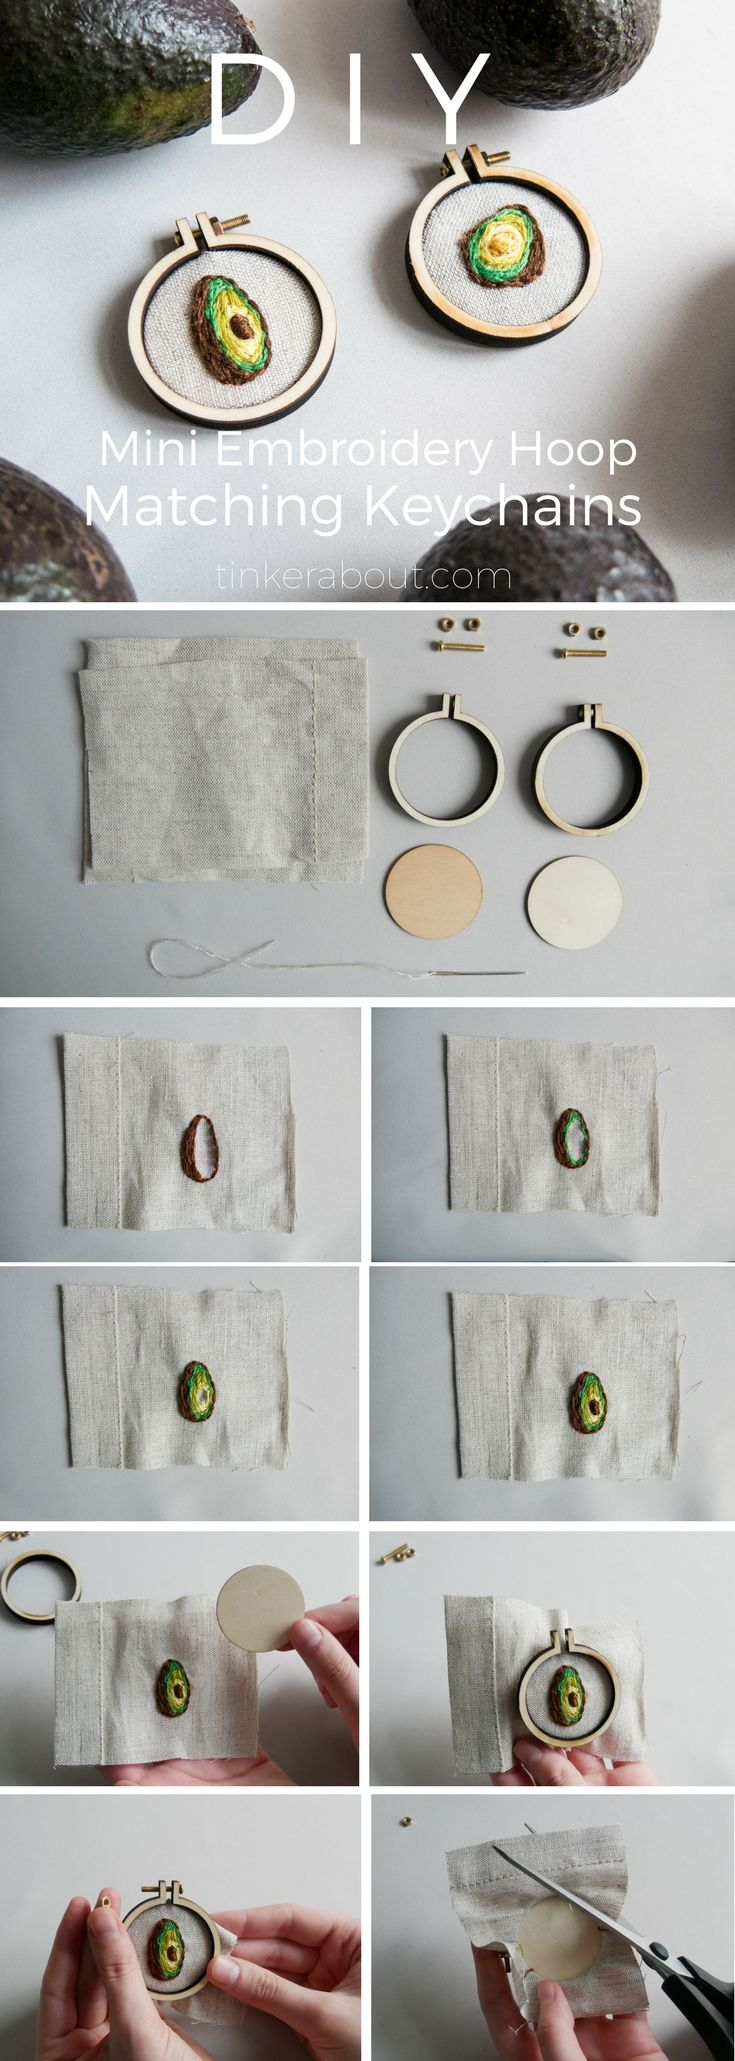 DIY Gift Idea for your Best Friend: Mini Embroidery Hoop Keychains #cheapgiftideas